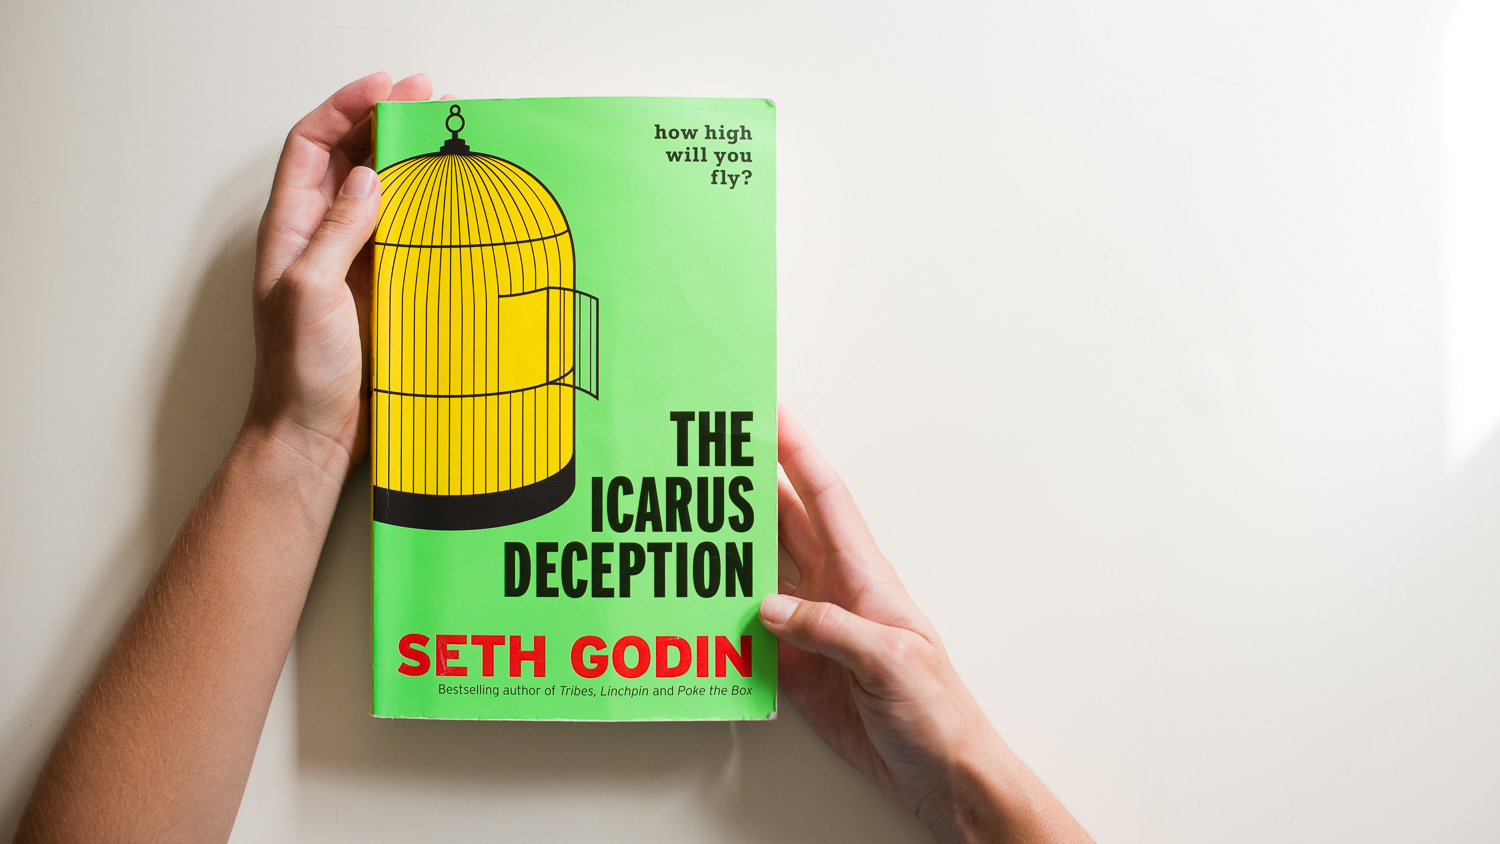 gallery_idealust icarus-deception-summary-creative-entrepreneurs-seth godin-tips-for-entrepreneurs-1